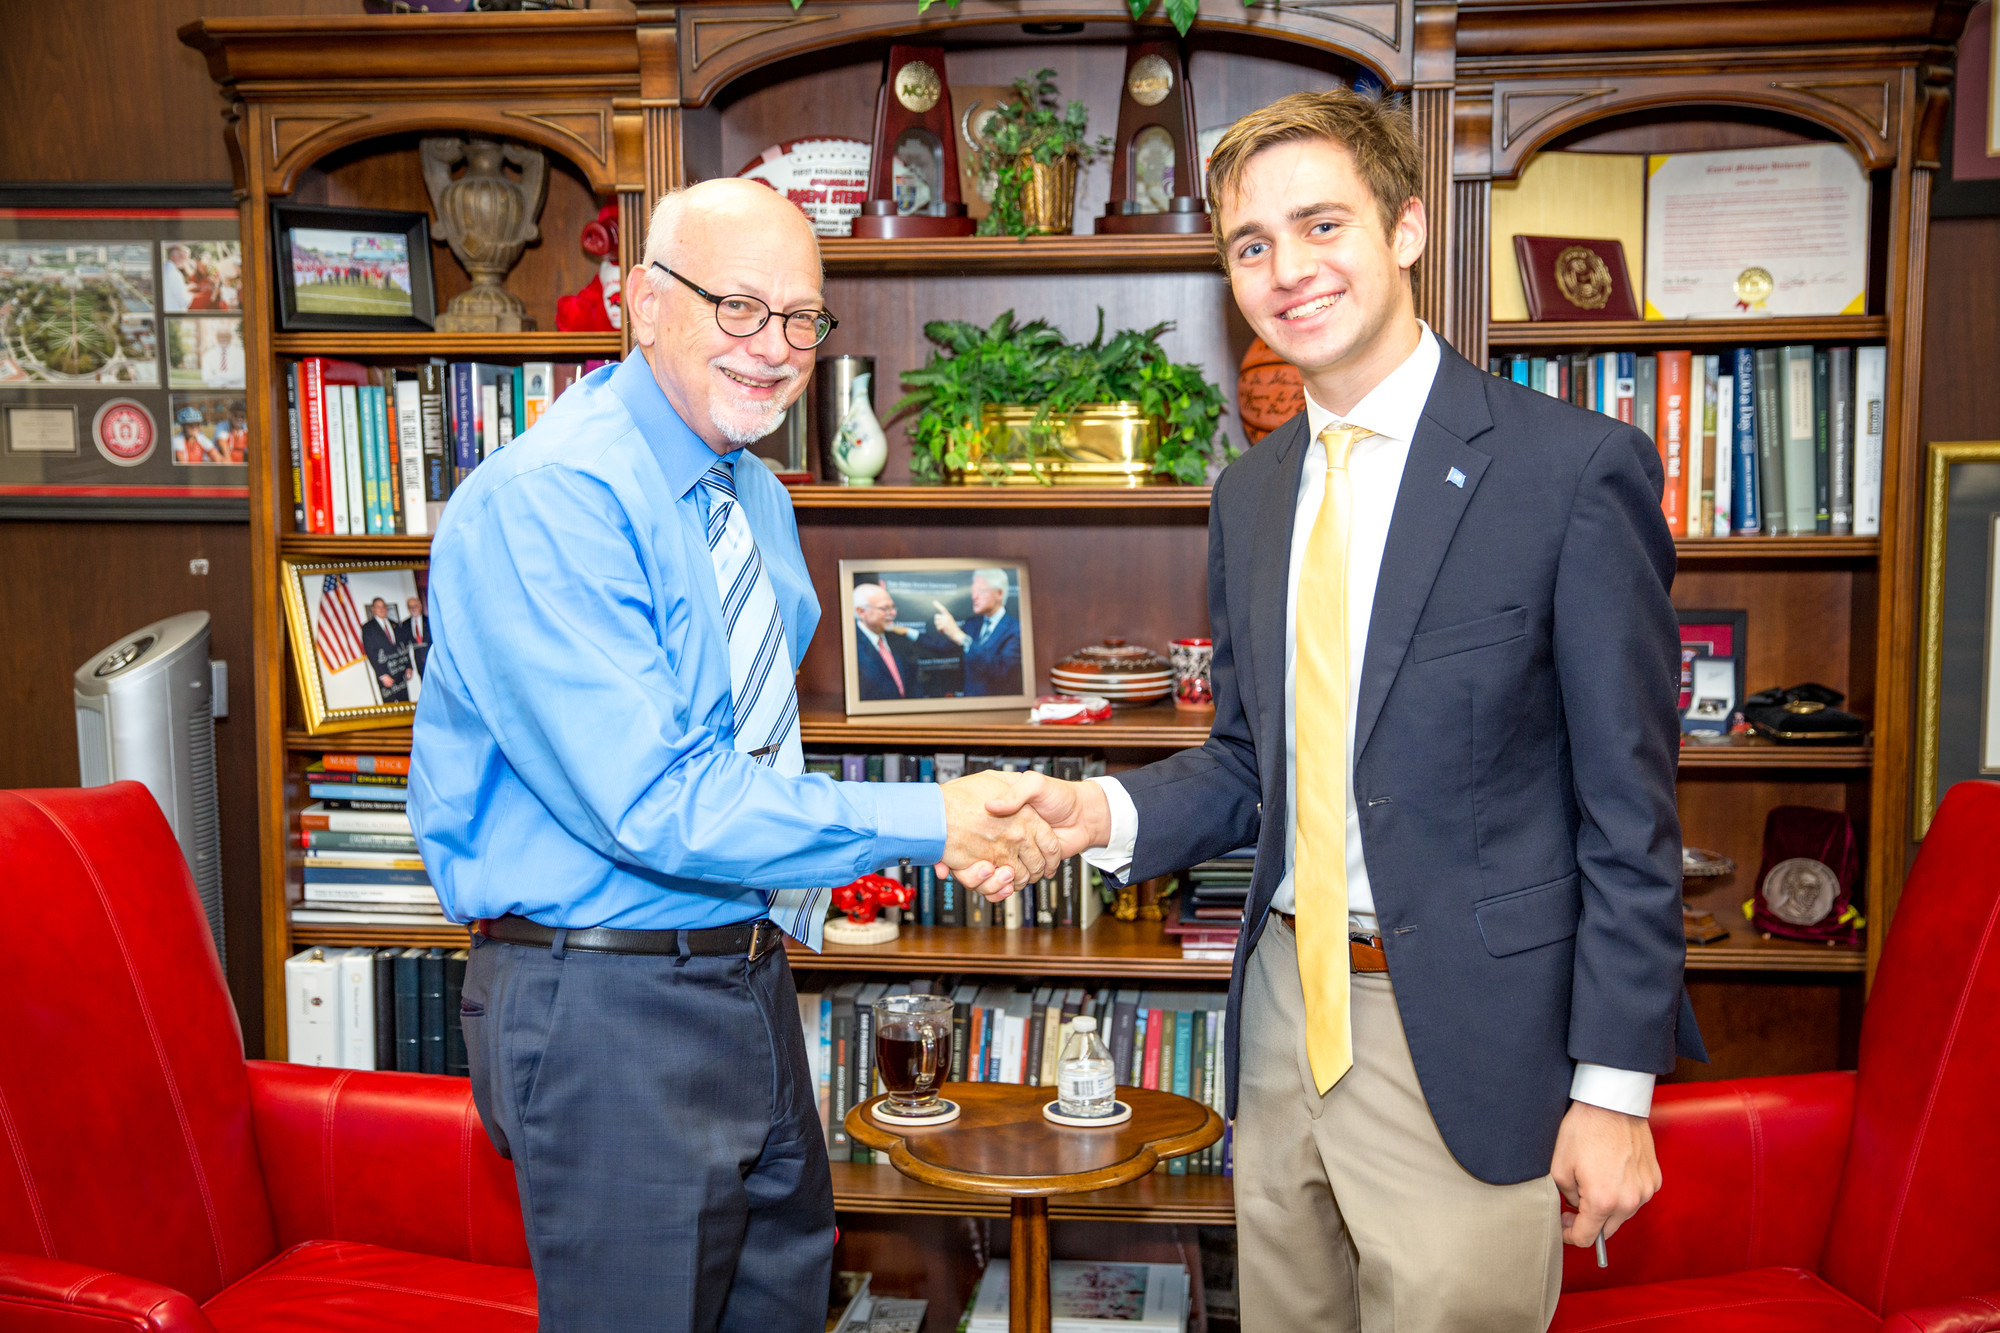 Chancellor shakes student dean's hand.